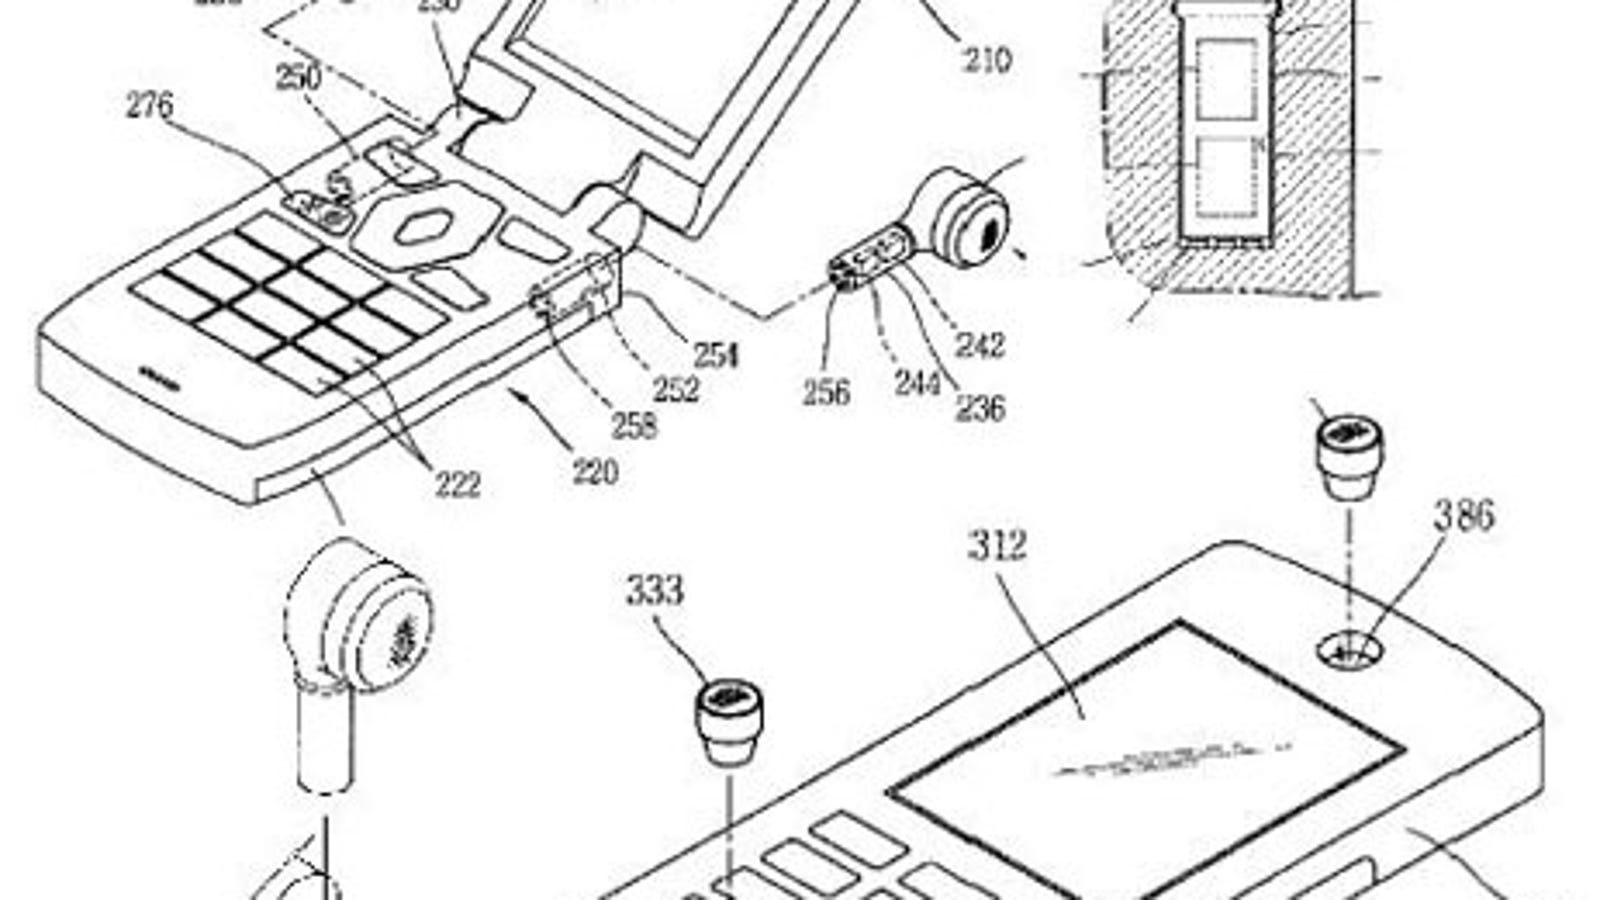 best rated earbuds with microphone - LG Files Patent for Way-Cool Detachable Wireless Earbuds